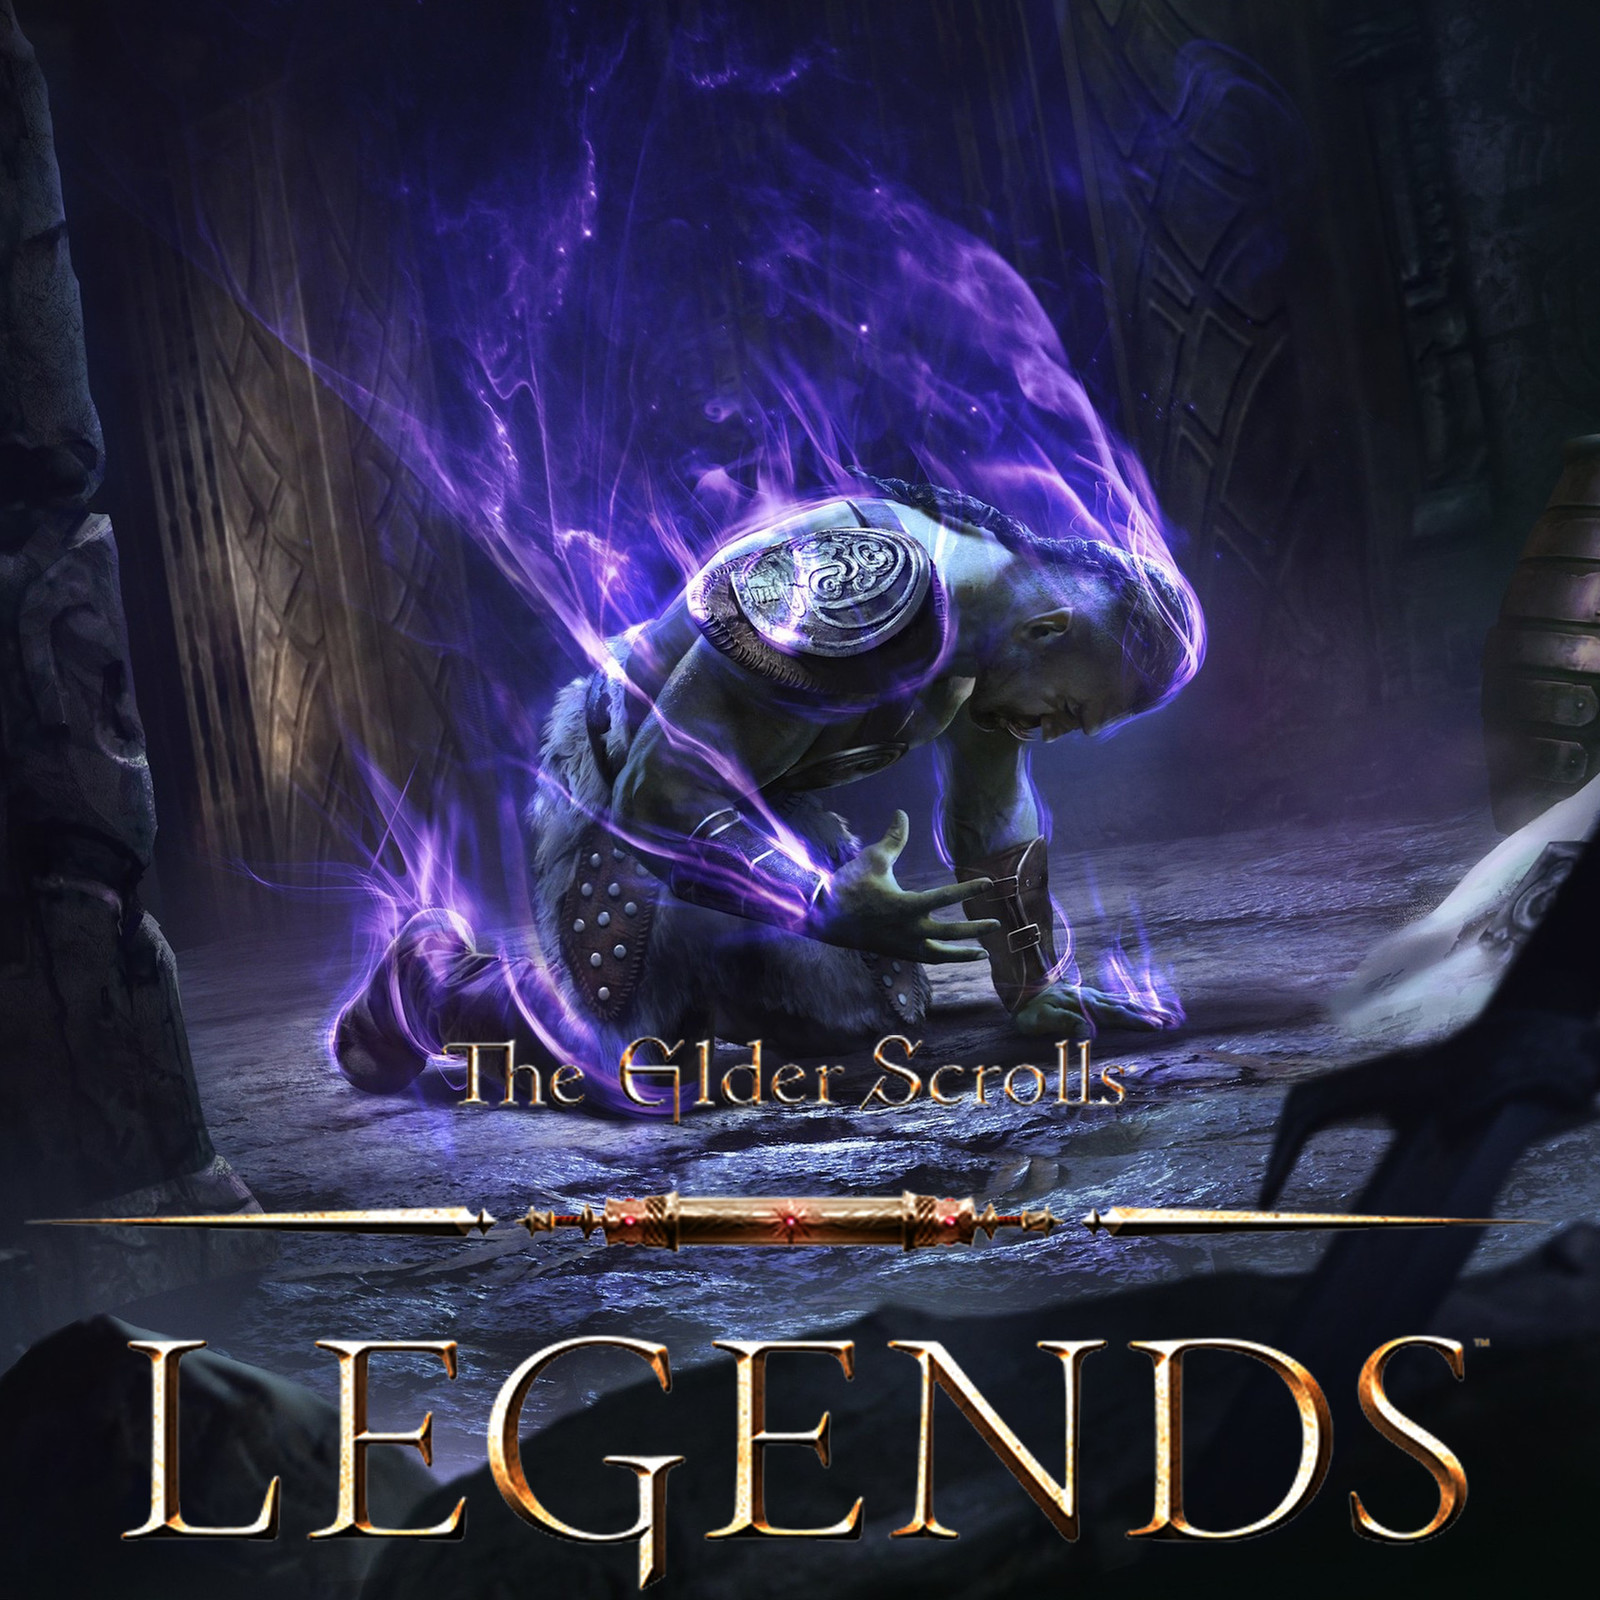 Weakness - The Elder Scrolls: Legends